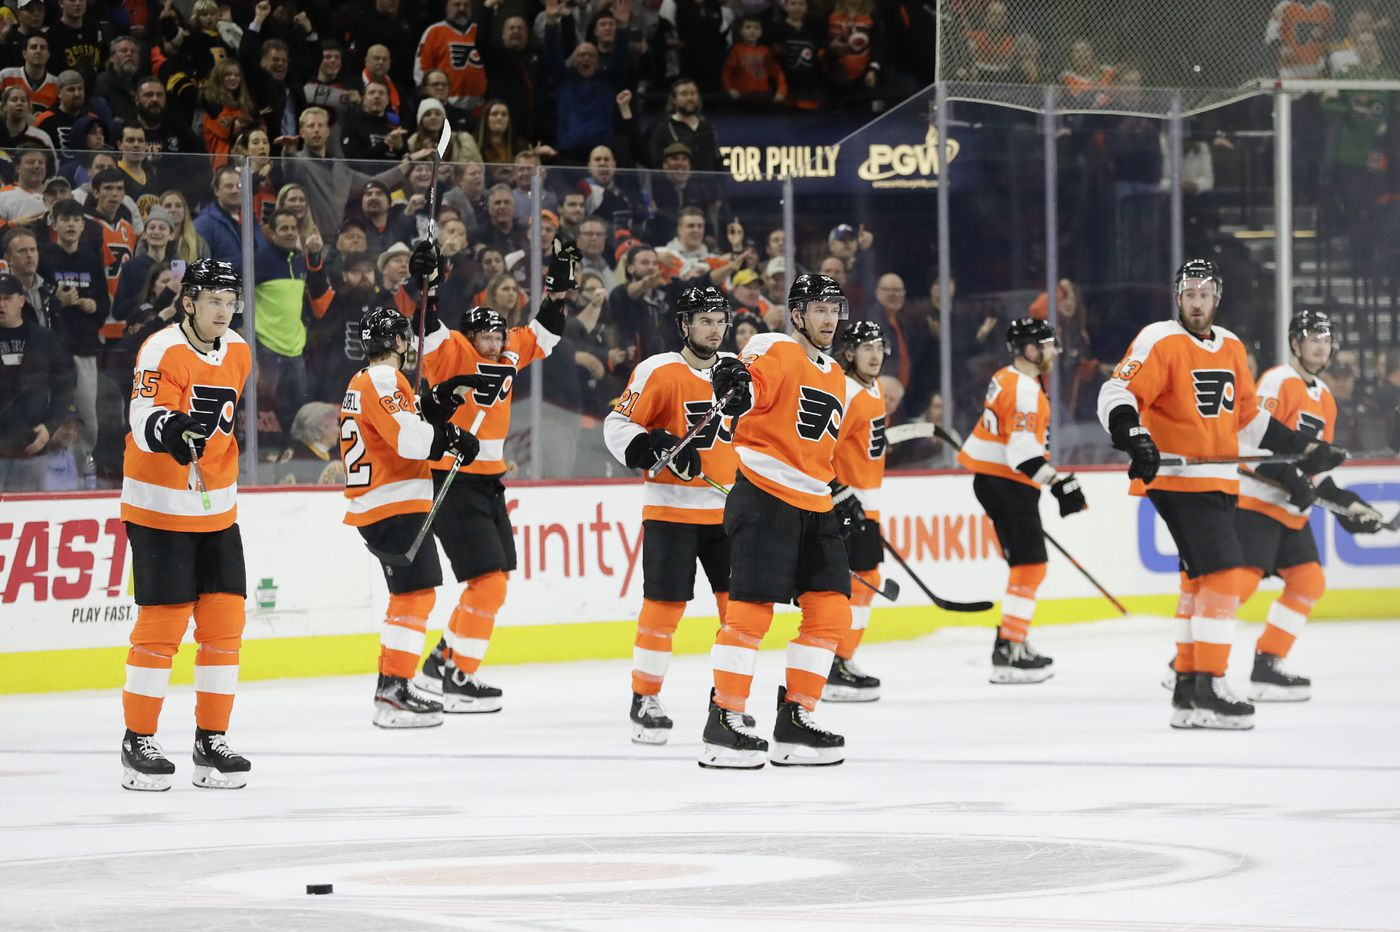 Carter Hart, Brad Marchand talk epic flub that led to Flyers' win over Bruins | On the Fly